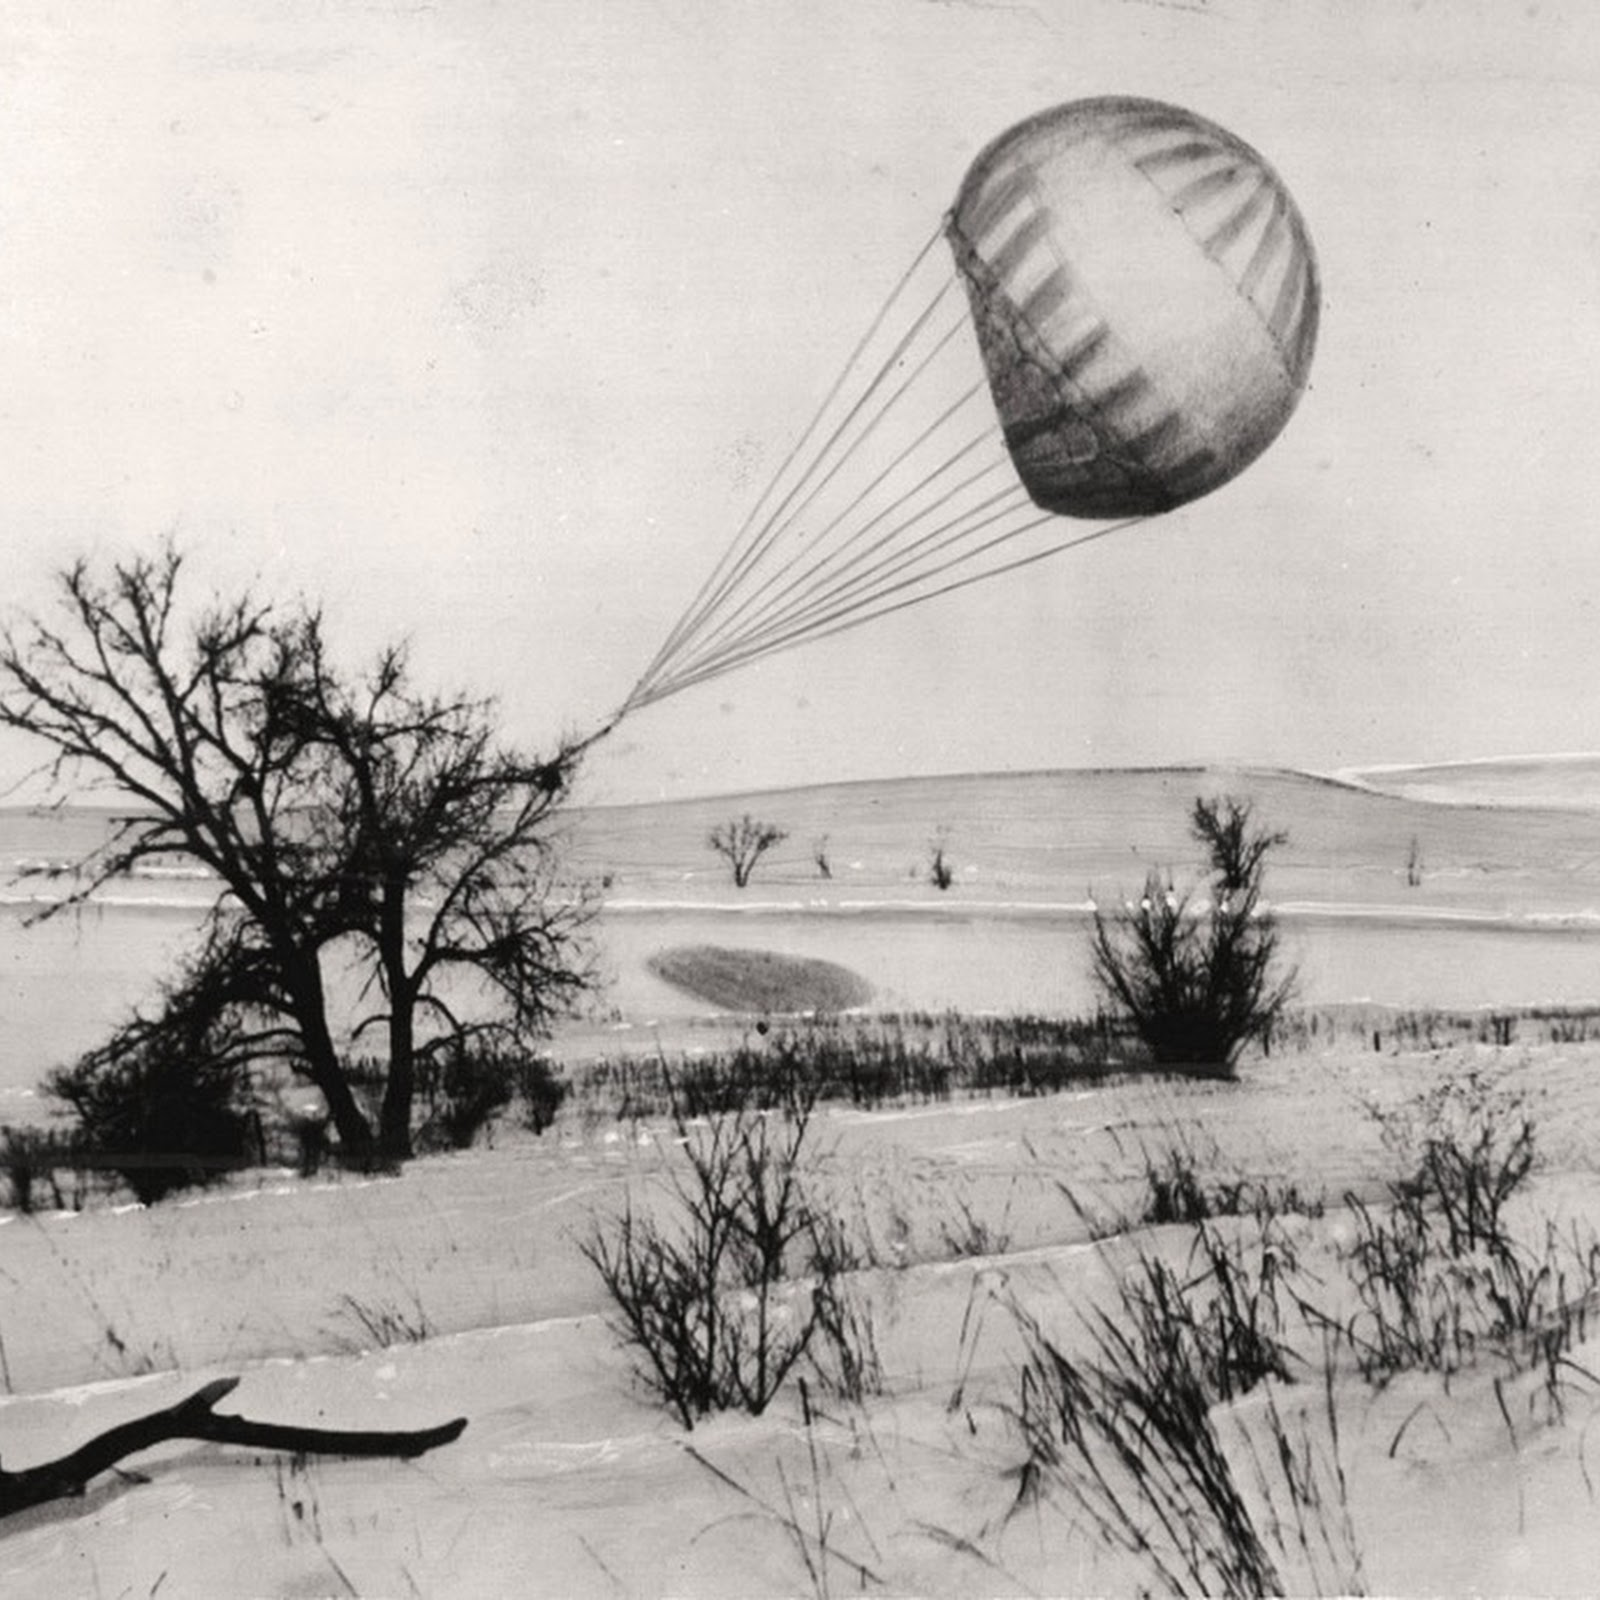 The Japanese Balloon Bombs of World War 2